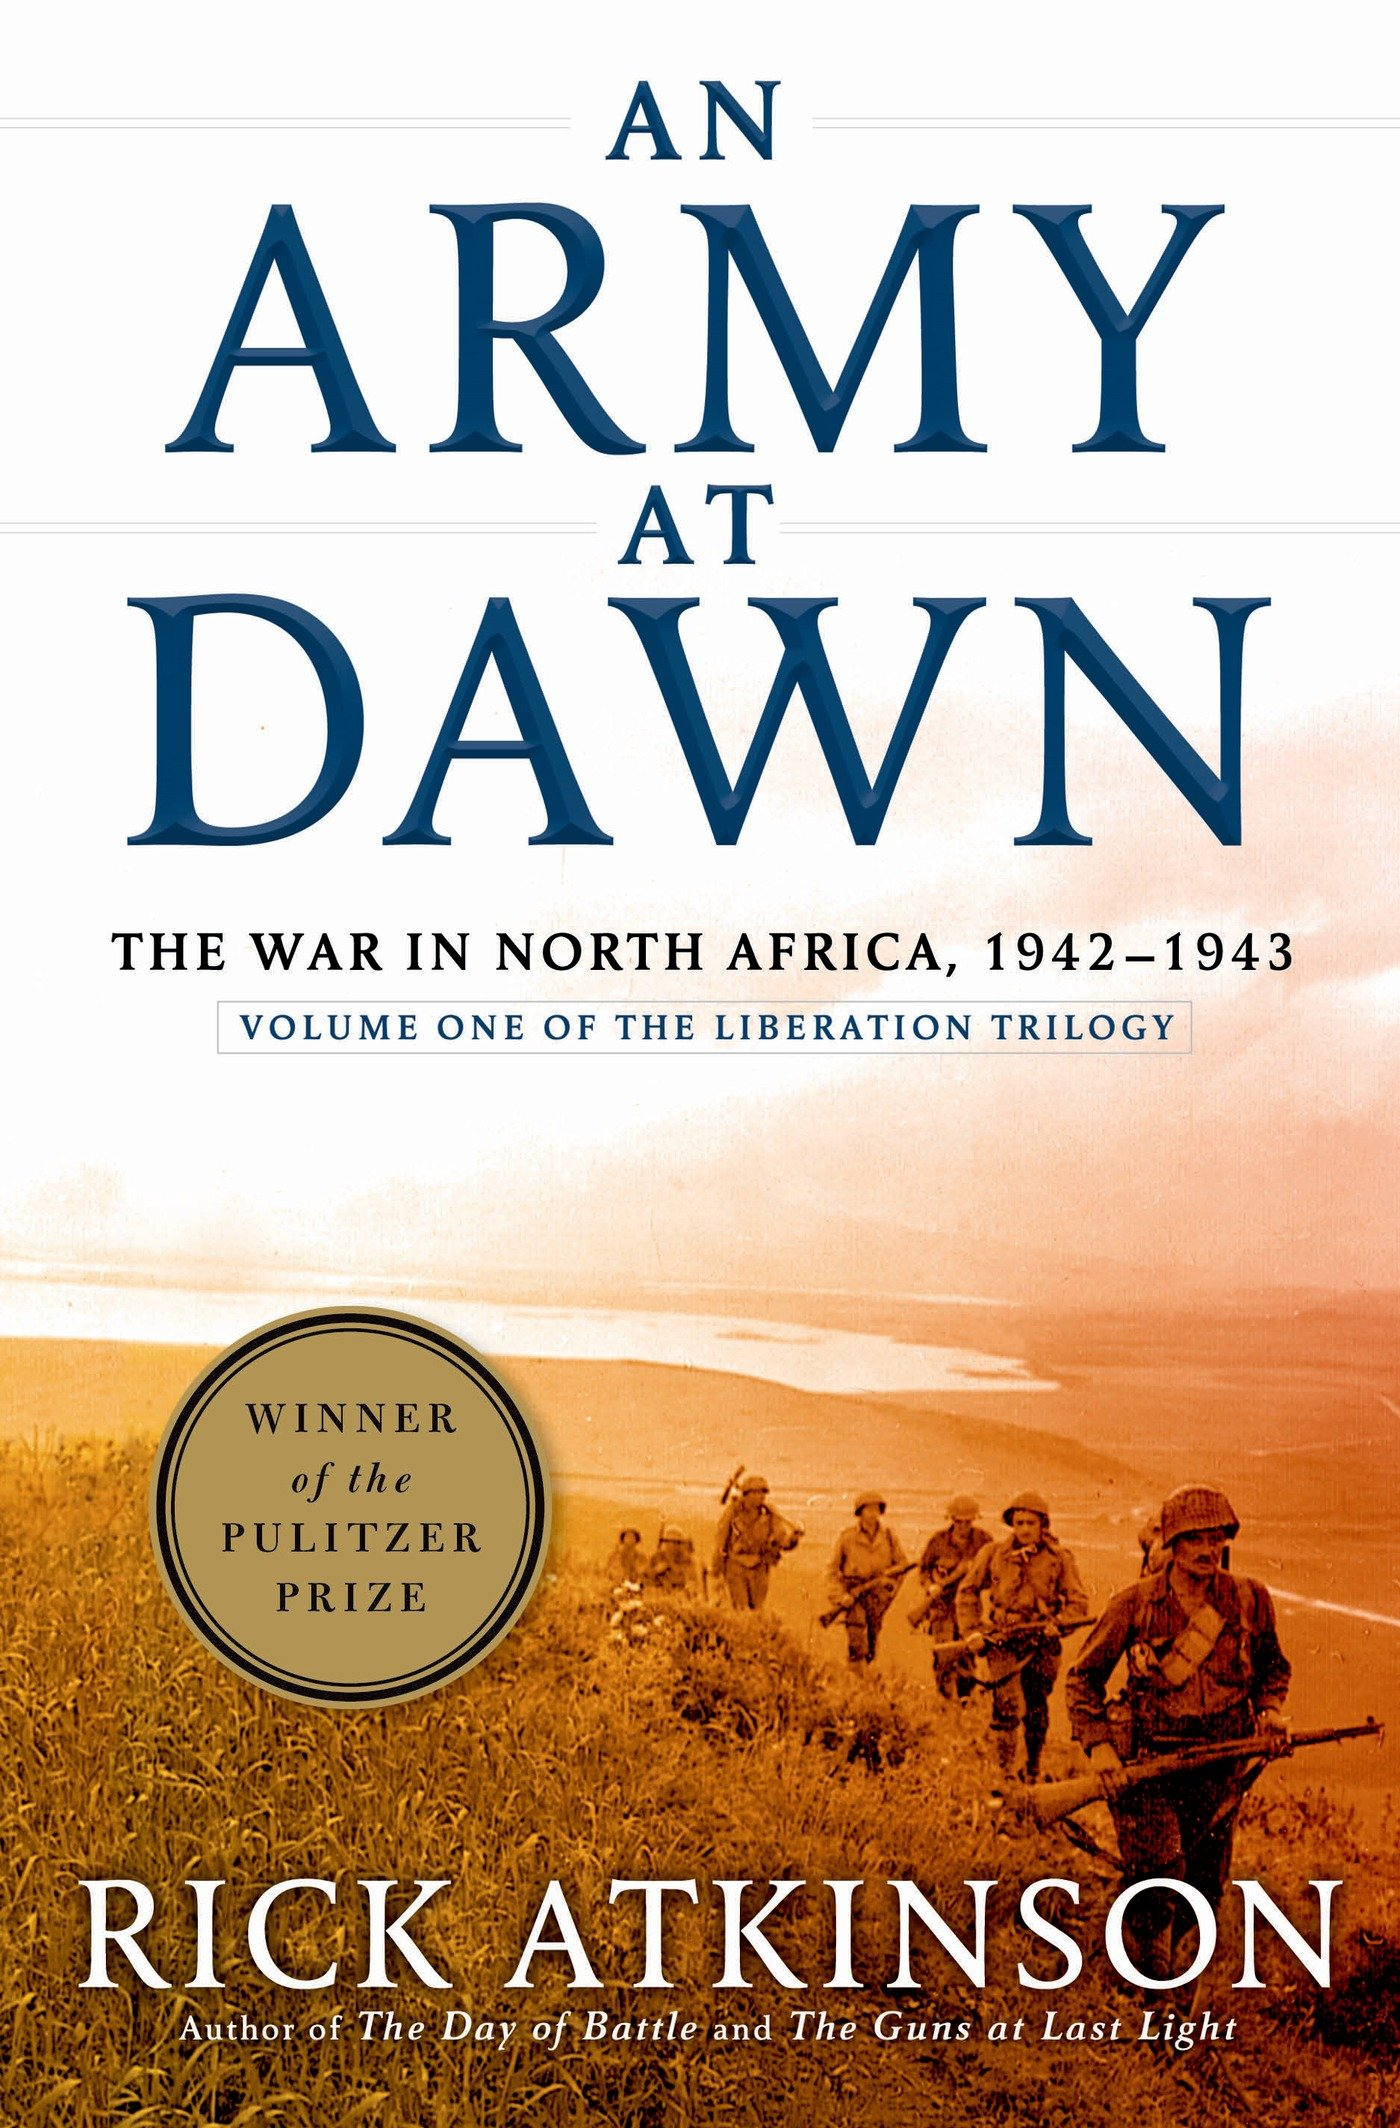 An Army at Dawn: The War in North Africa, 1942-1943, Volume One of the  Liberation Trilogy: Amazon.co.uk: Rick Atkinson: 0884515639630: Books